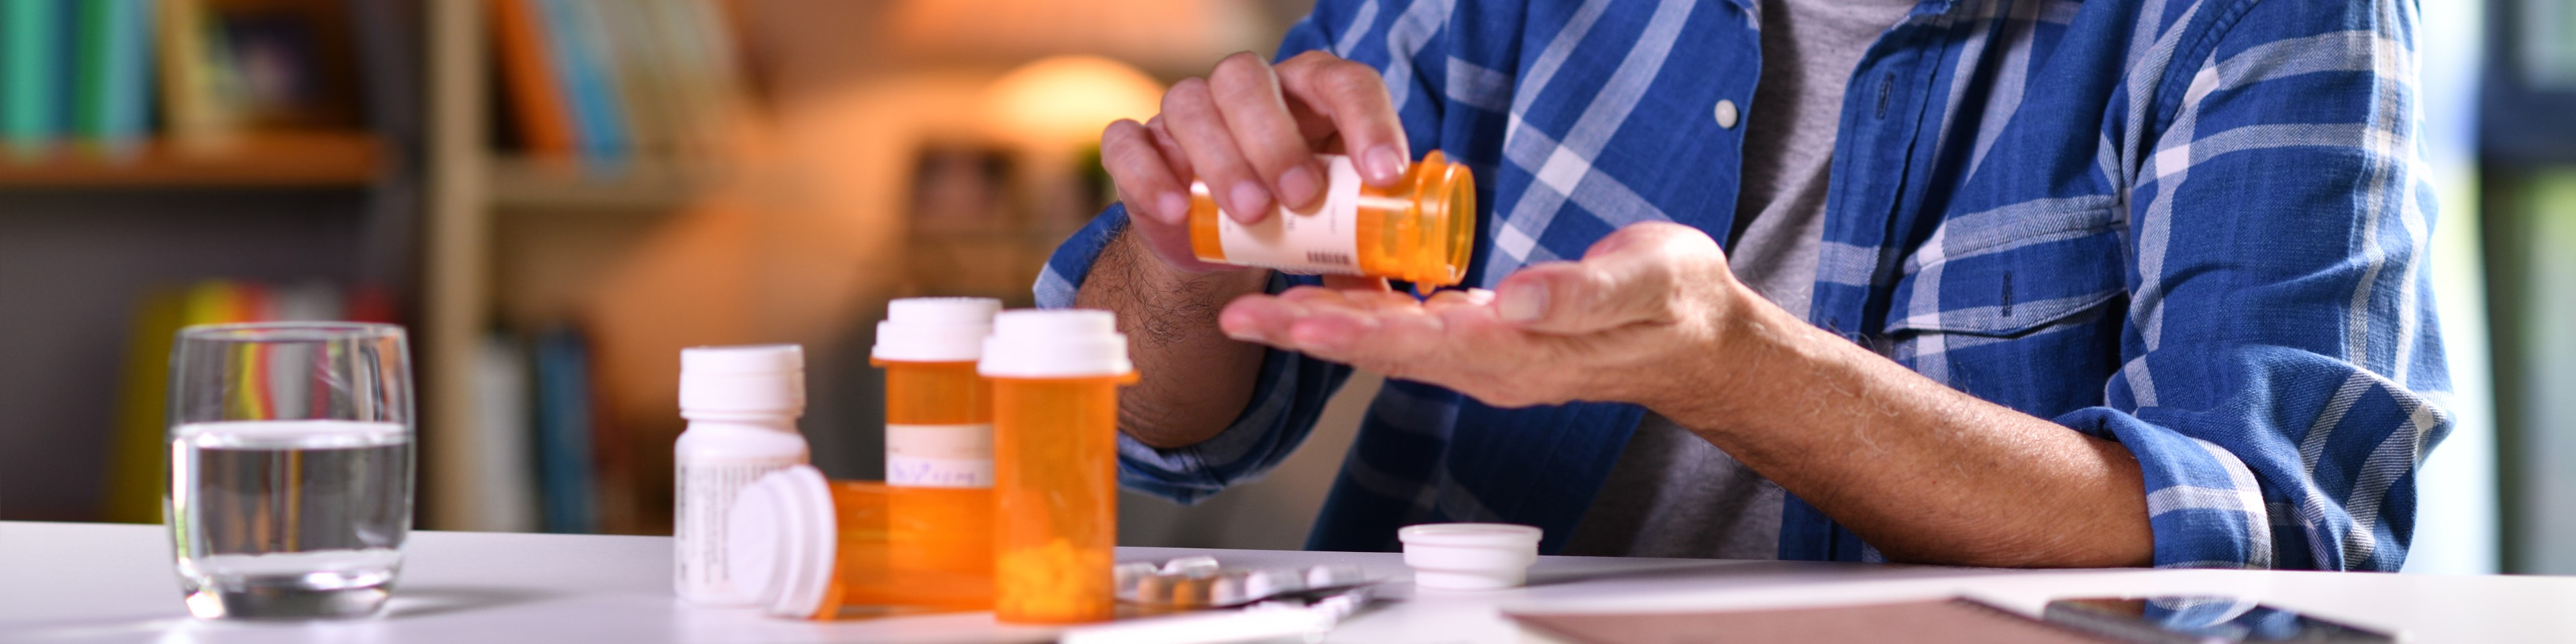 Medication nonadherence: Medicine's weakest link